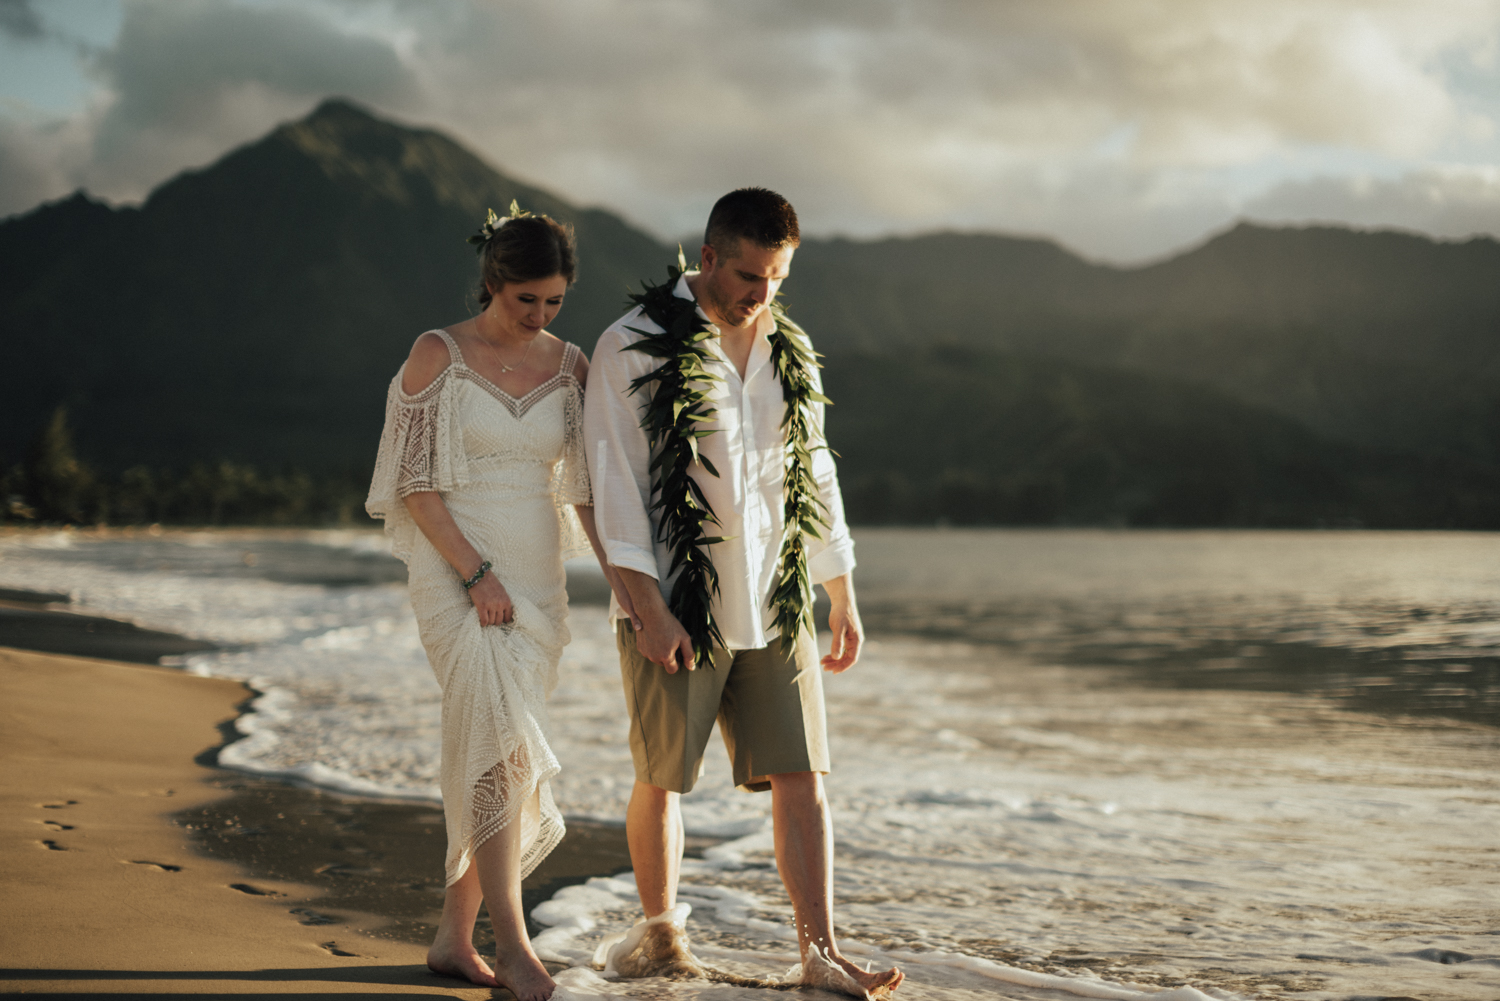 Kauai-elopement-photographer-85.jpg